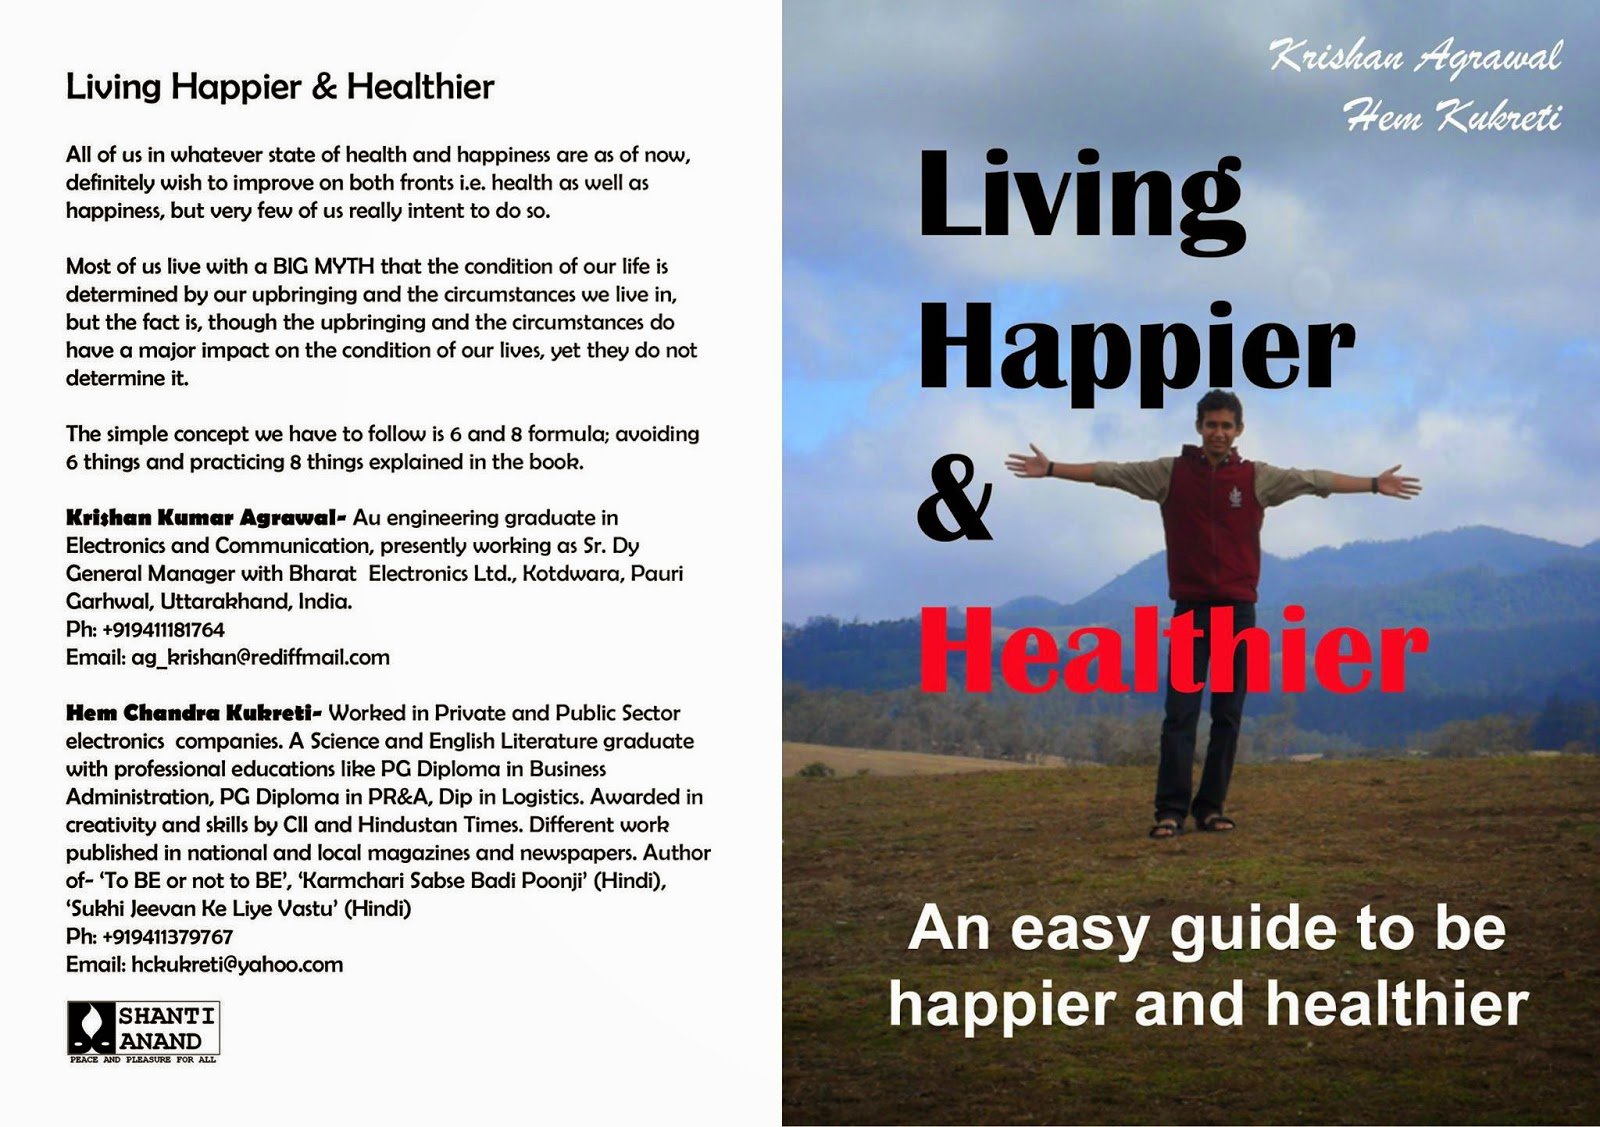 http://www.amazon.com/Living-Happier-Healthier-Krishan-Agrawal-ebook/dp/B00M7A2RIY/ref=sr_1_10?s=books&ie=UTF8&qid=1407080301&sr=1-10&keywords=living+happier+and+healthier